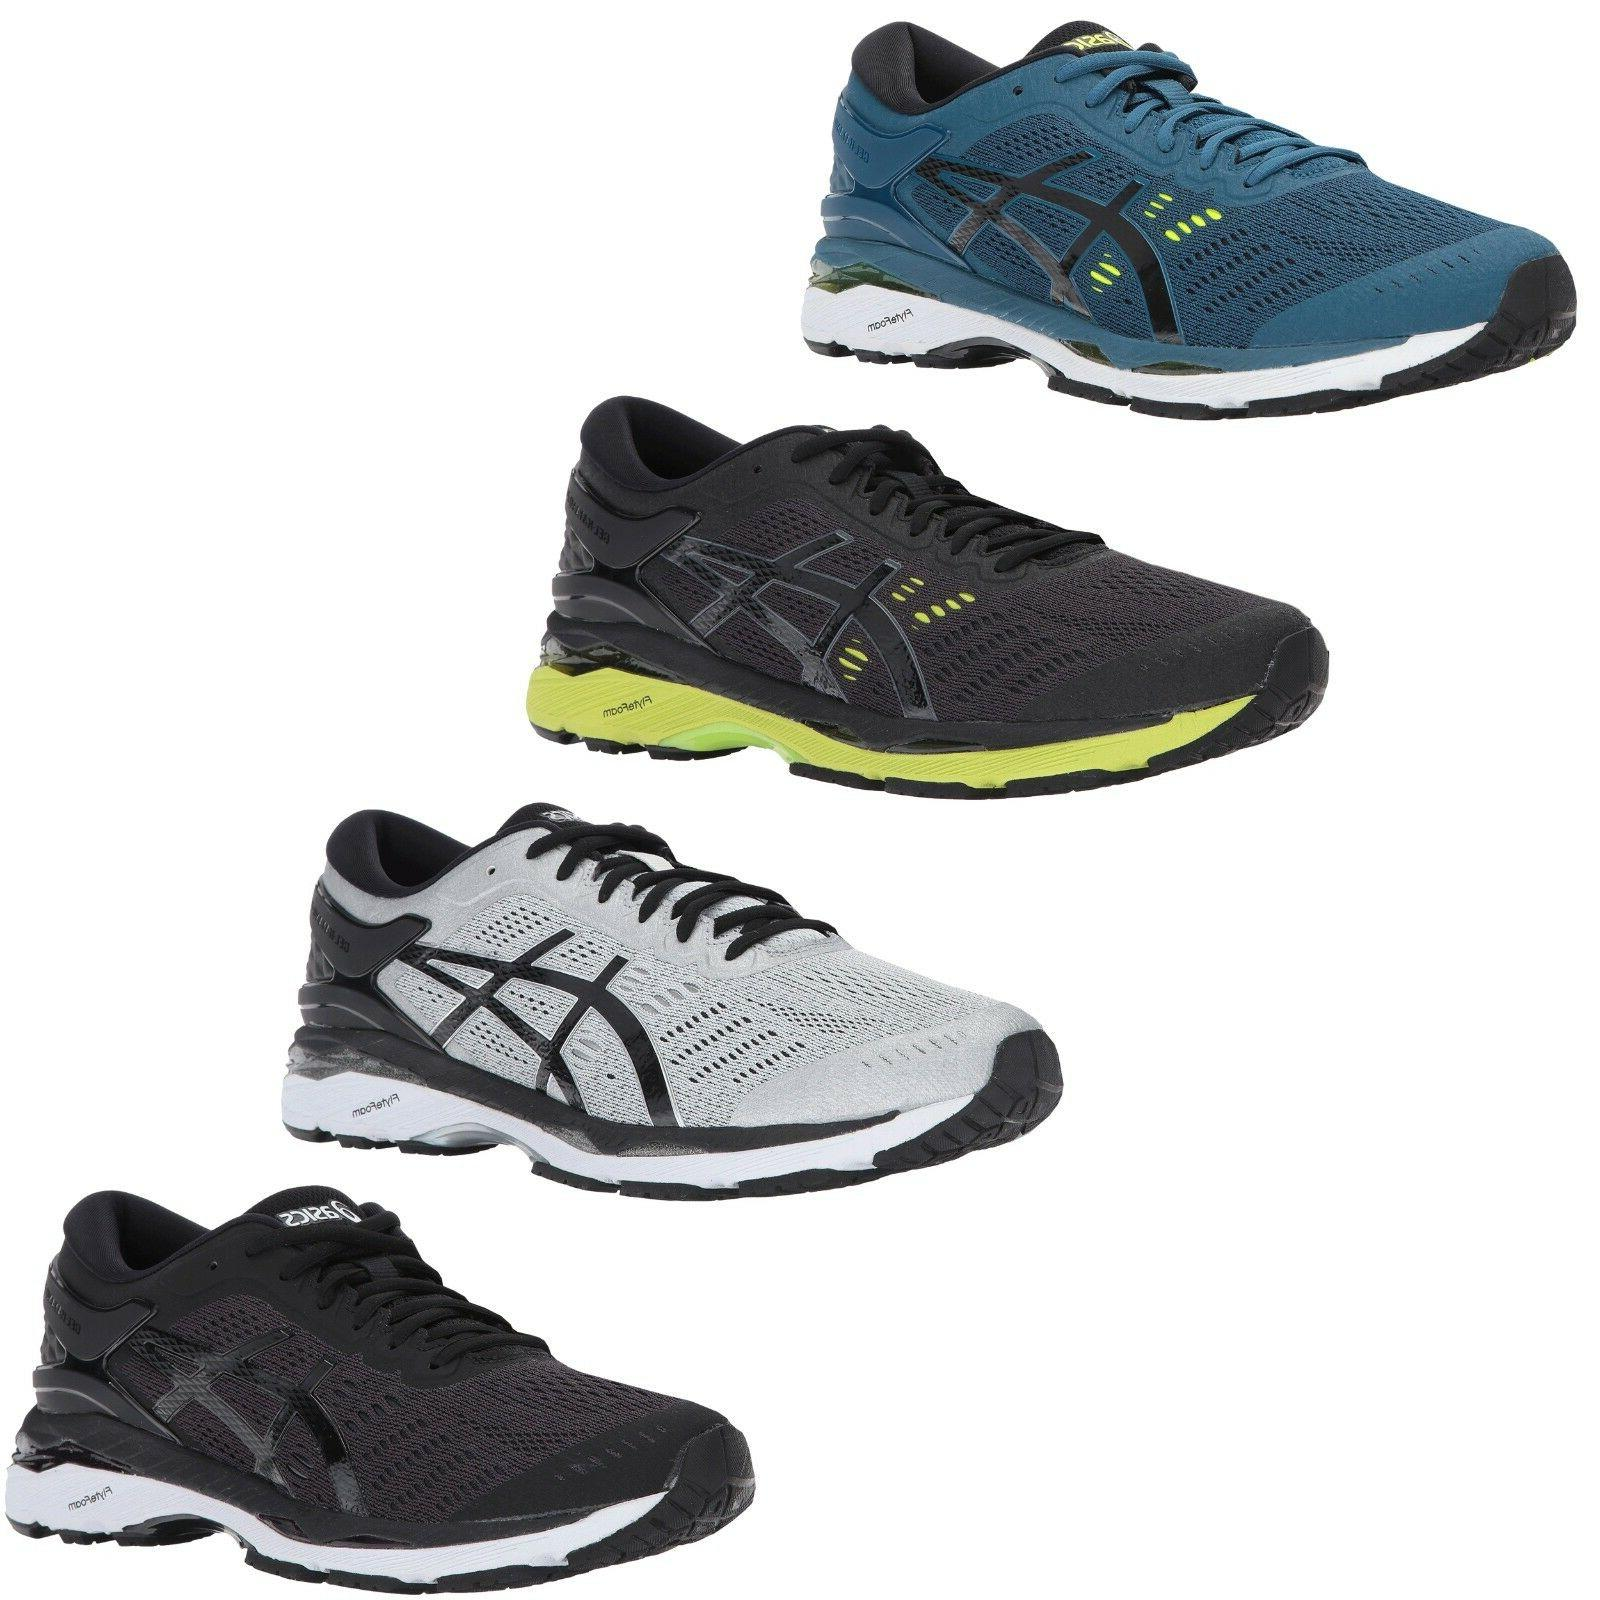 ASICS MENS GEL KAYANO 24 T749N RUNNING SHOES